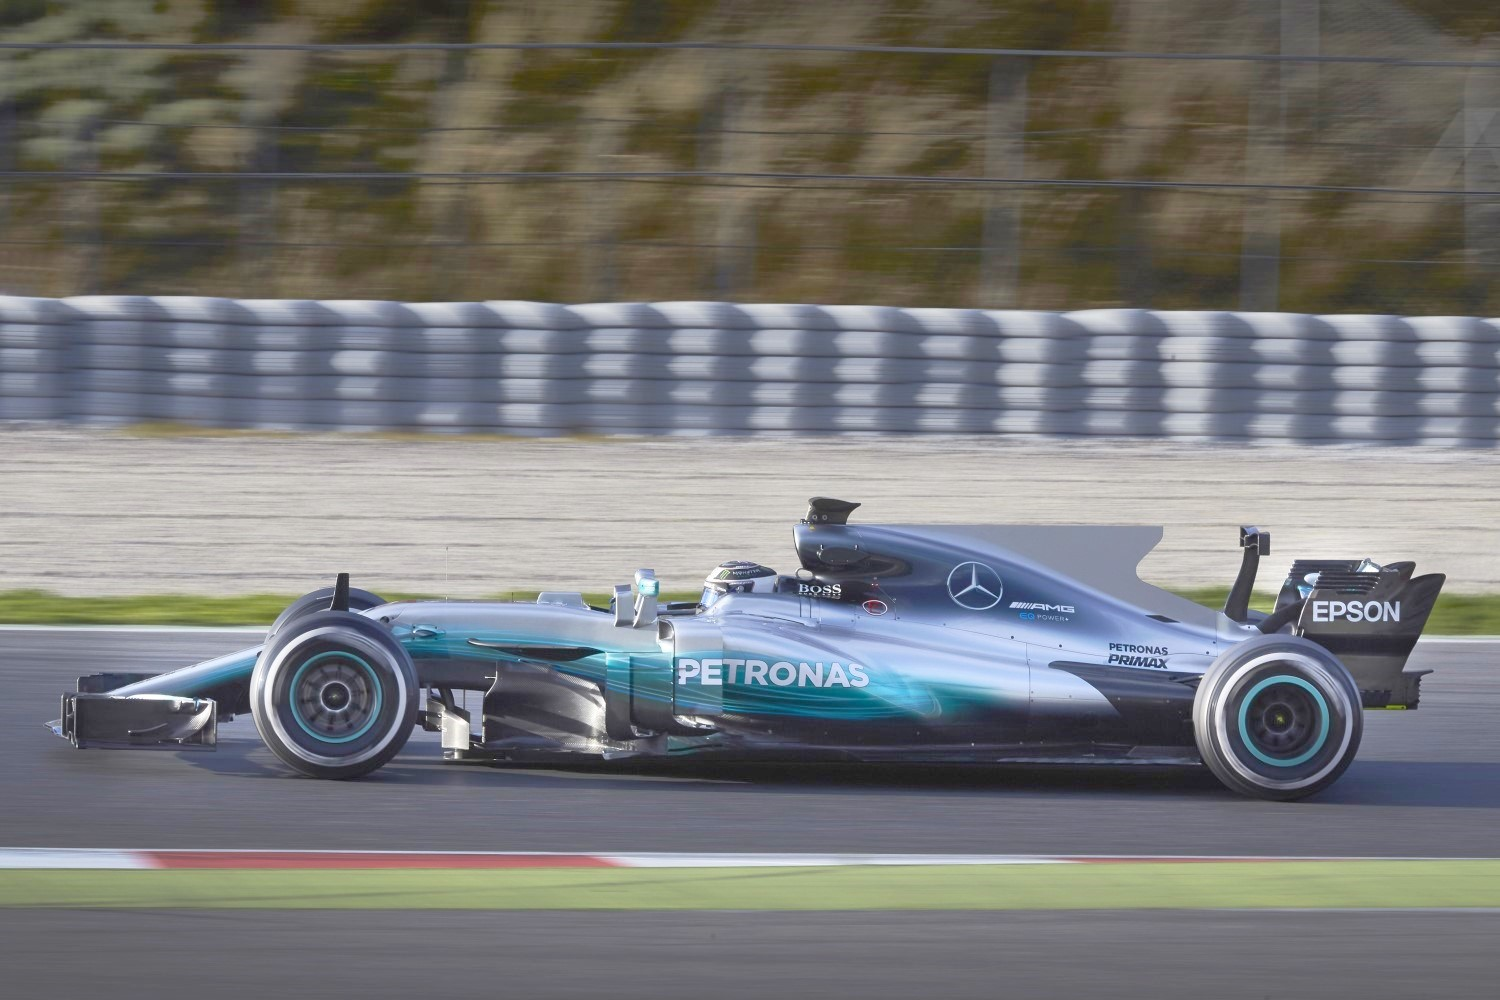 Bottas is learning that anyone can be fast in an Aldo Costa designed car